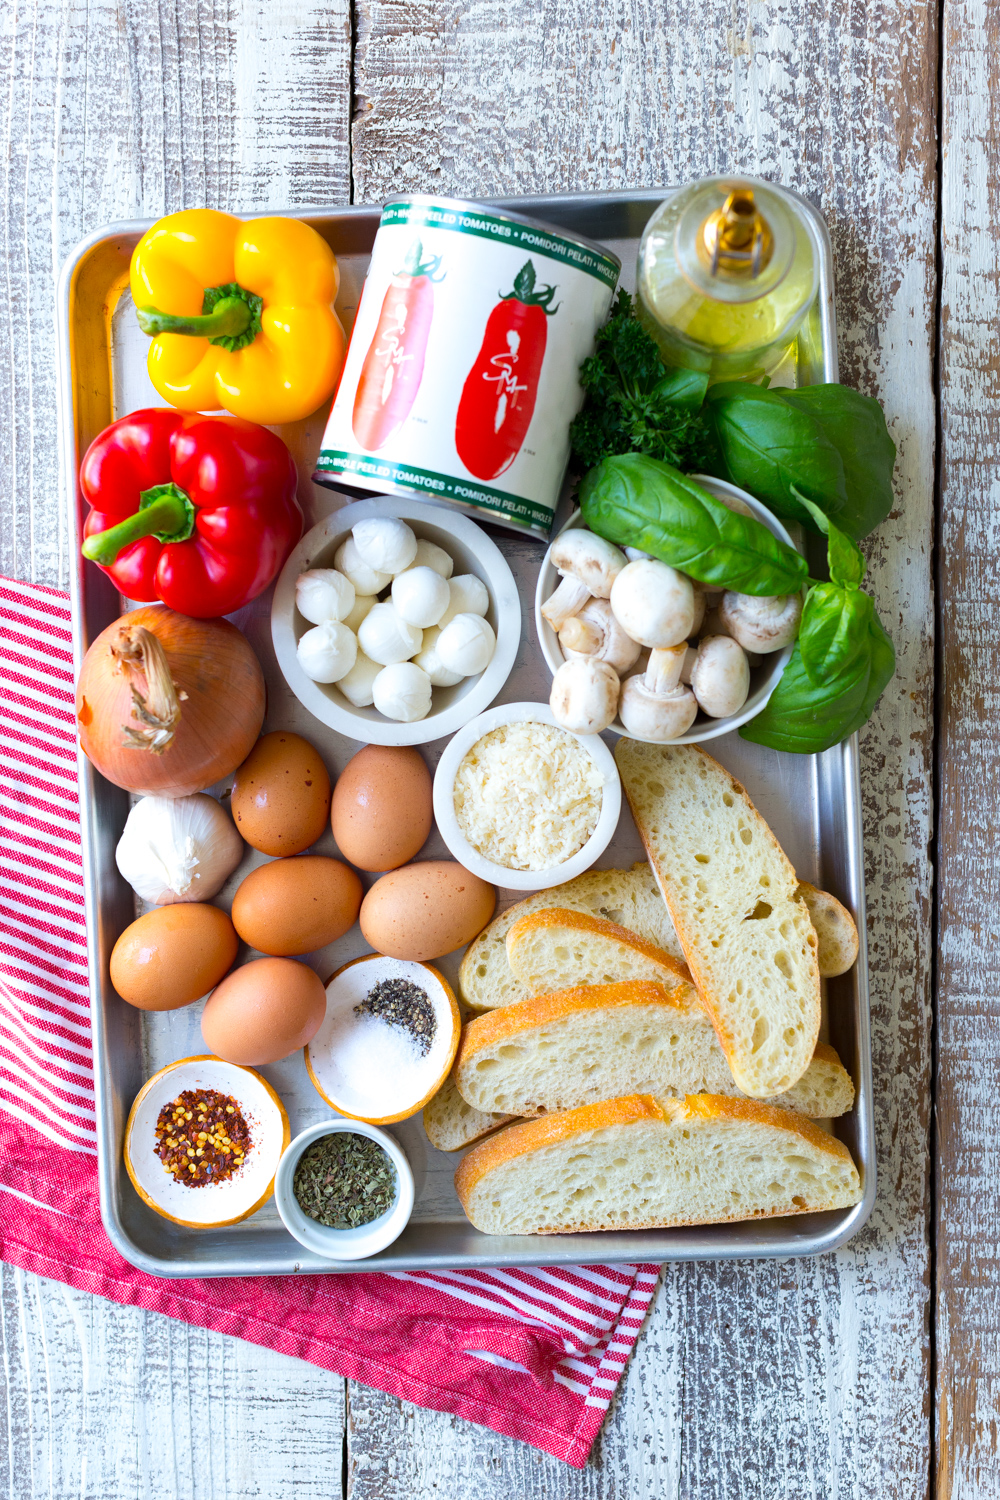 Sheet Pan Italian Baked Eggs ingredients